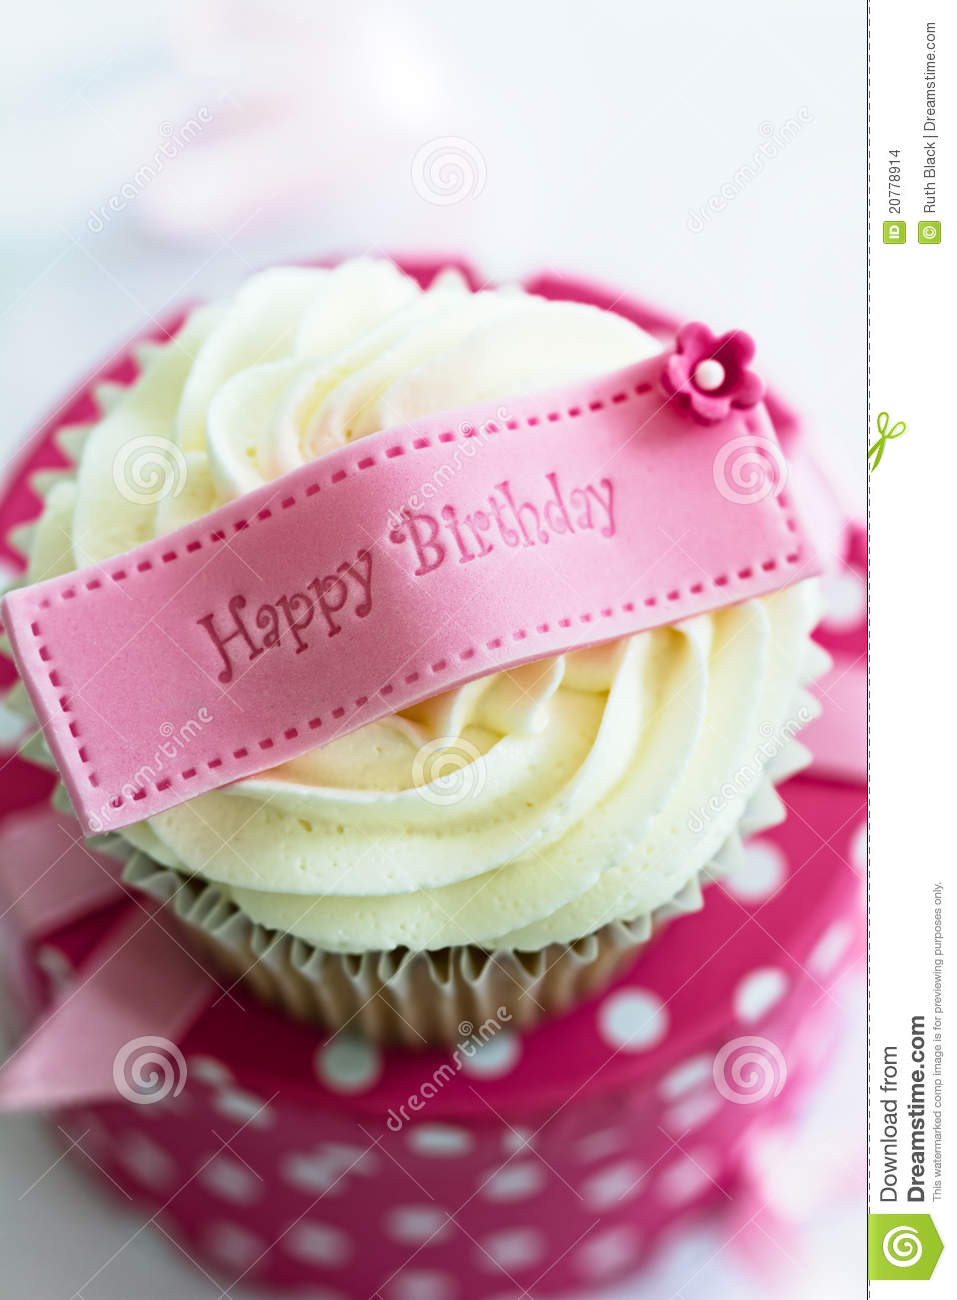 Happy Birthday Cupcake Stock Images - Image: 20778914